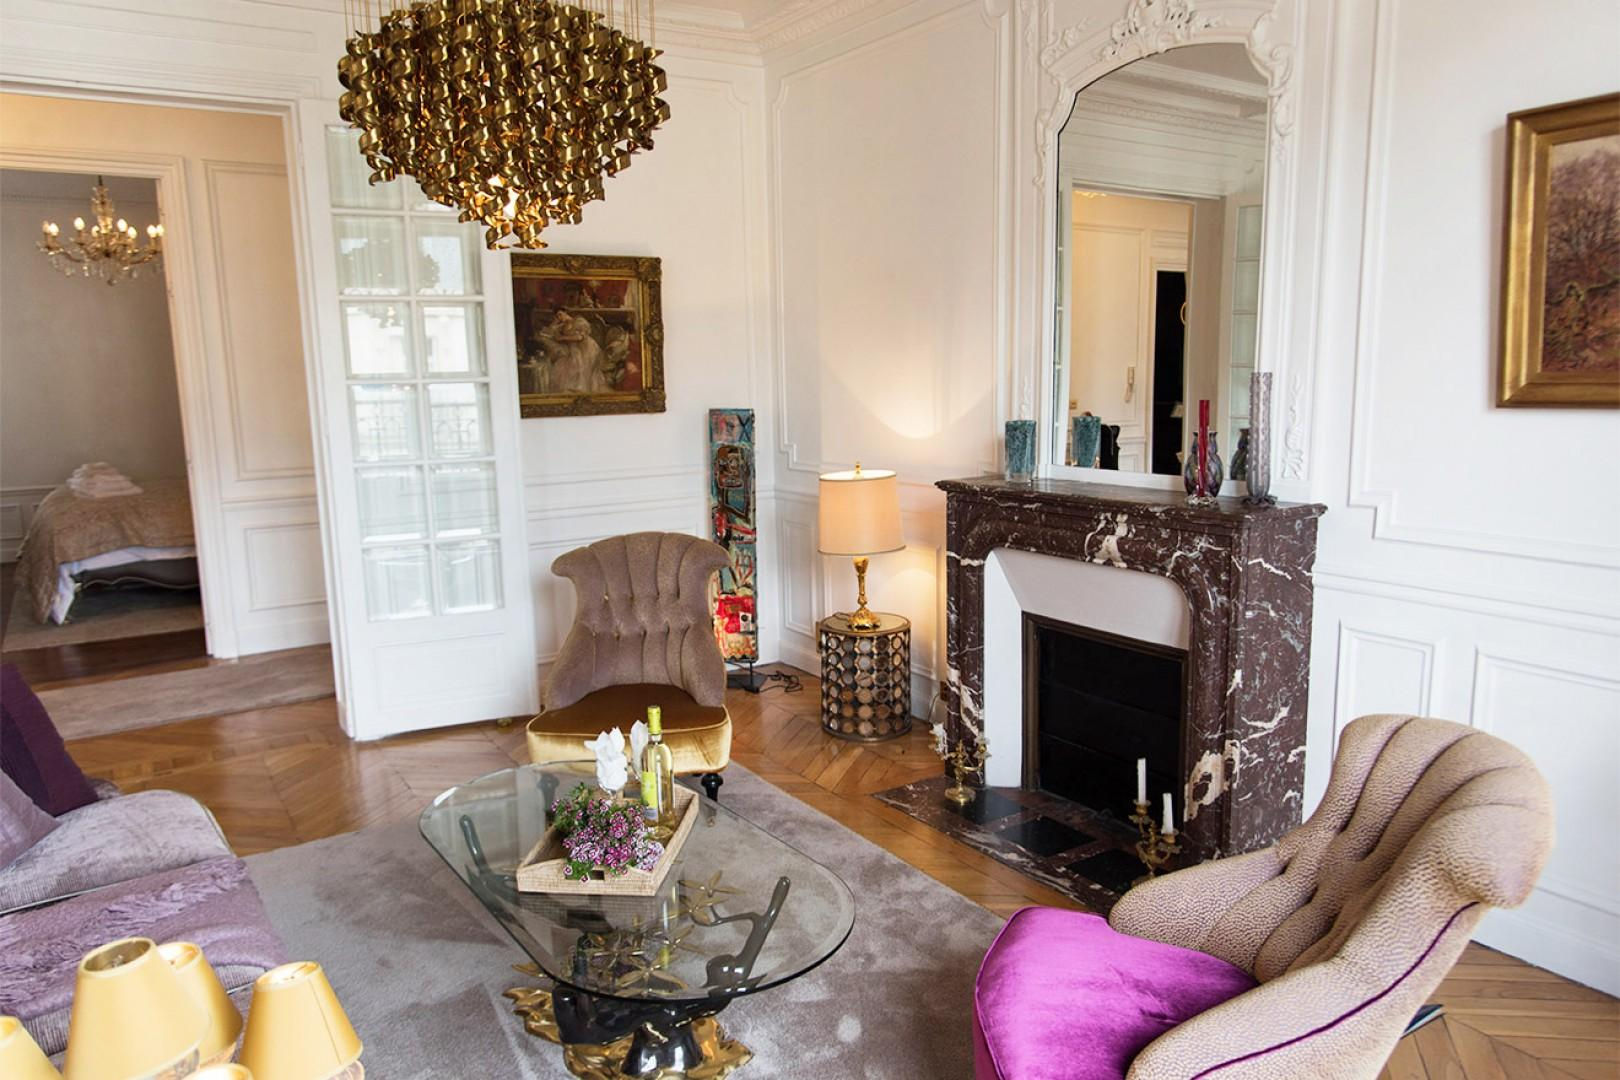 Live like royalty in this luxurious Paris apartment!